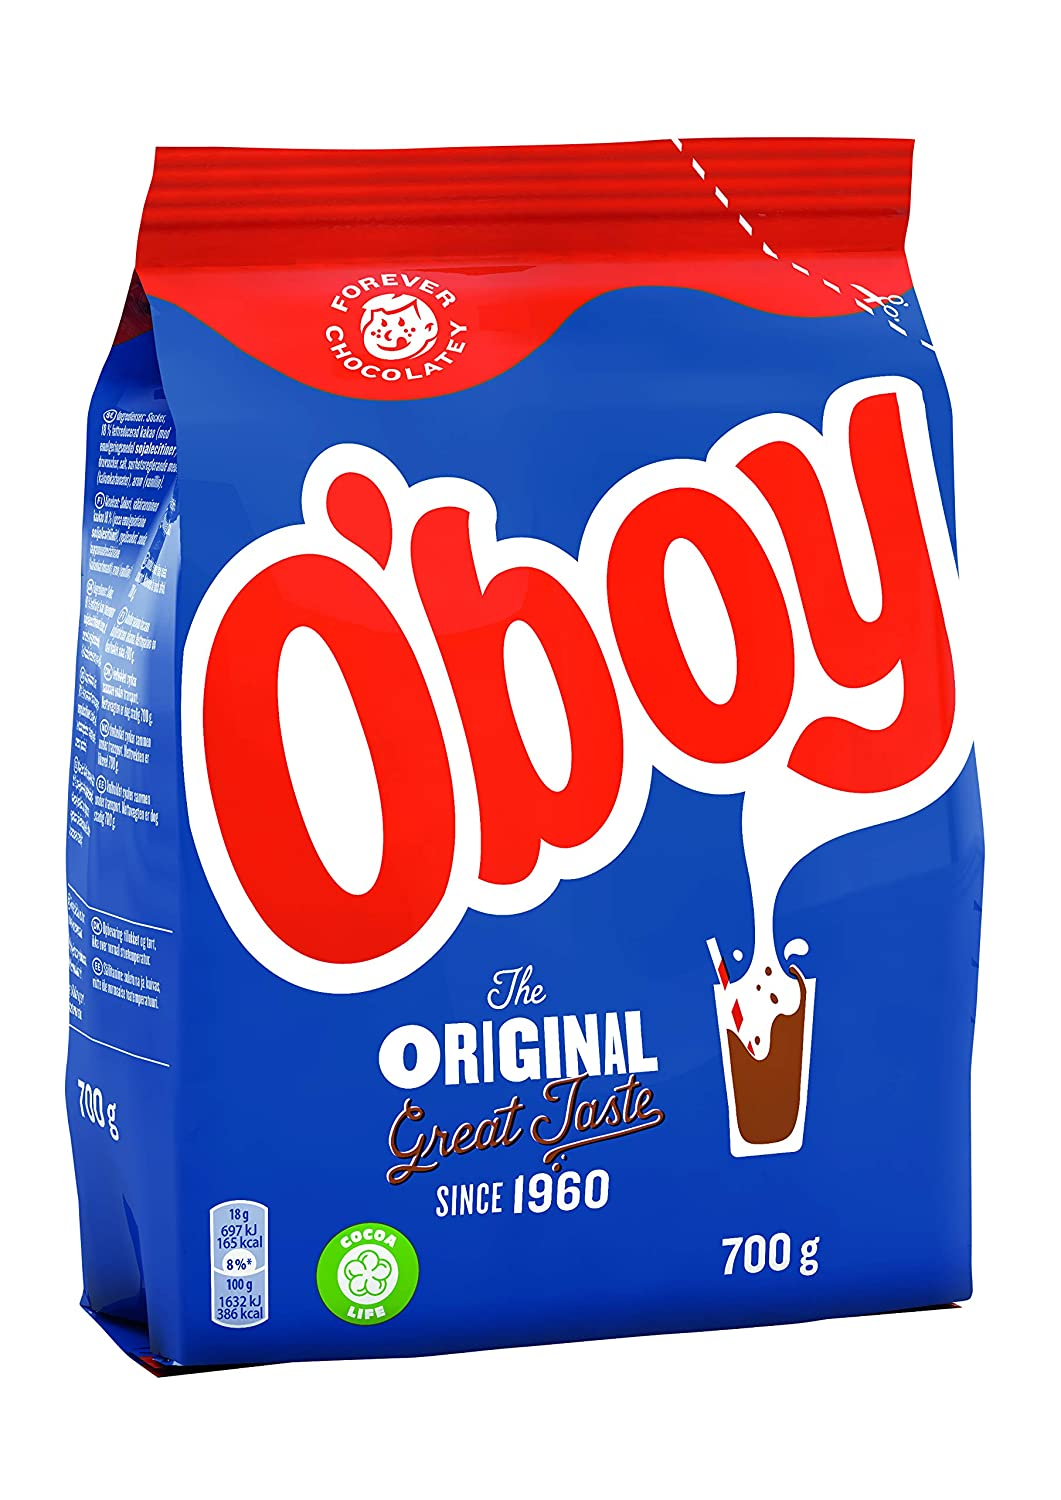 O'Boy Chokladdryck Regular discount Big 70% OFF Outlet Pack – Instant 7 Chocolate Milk